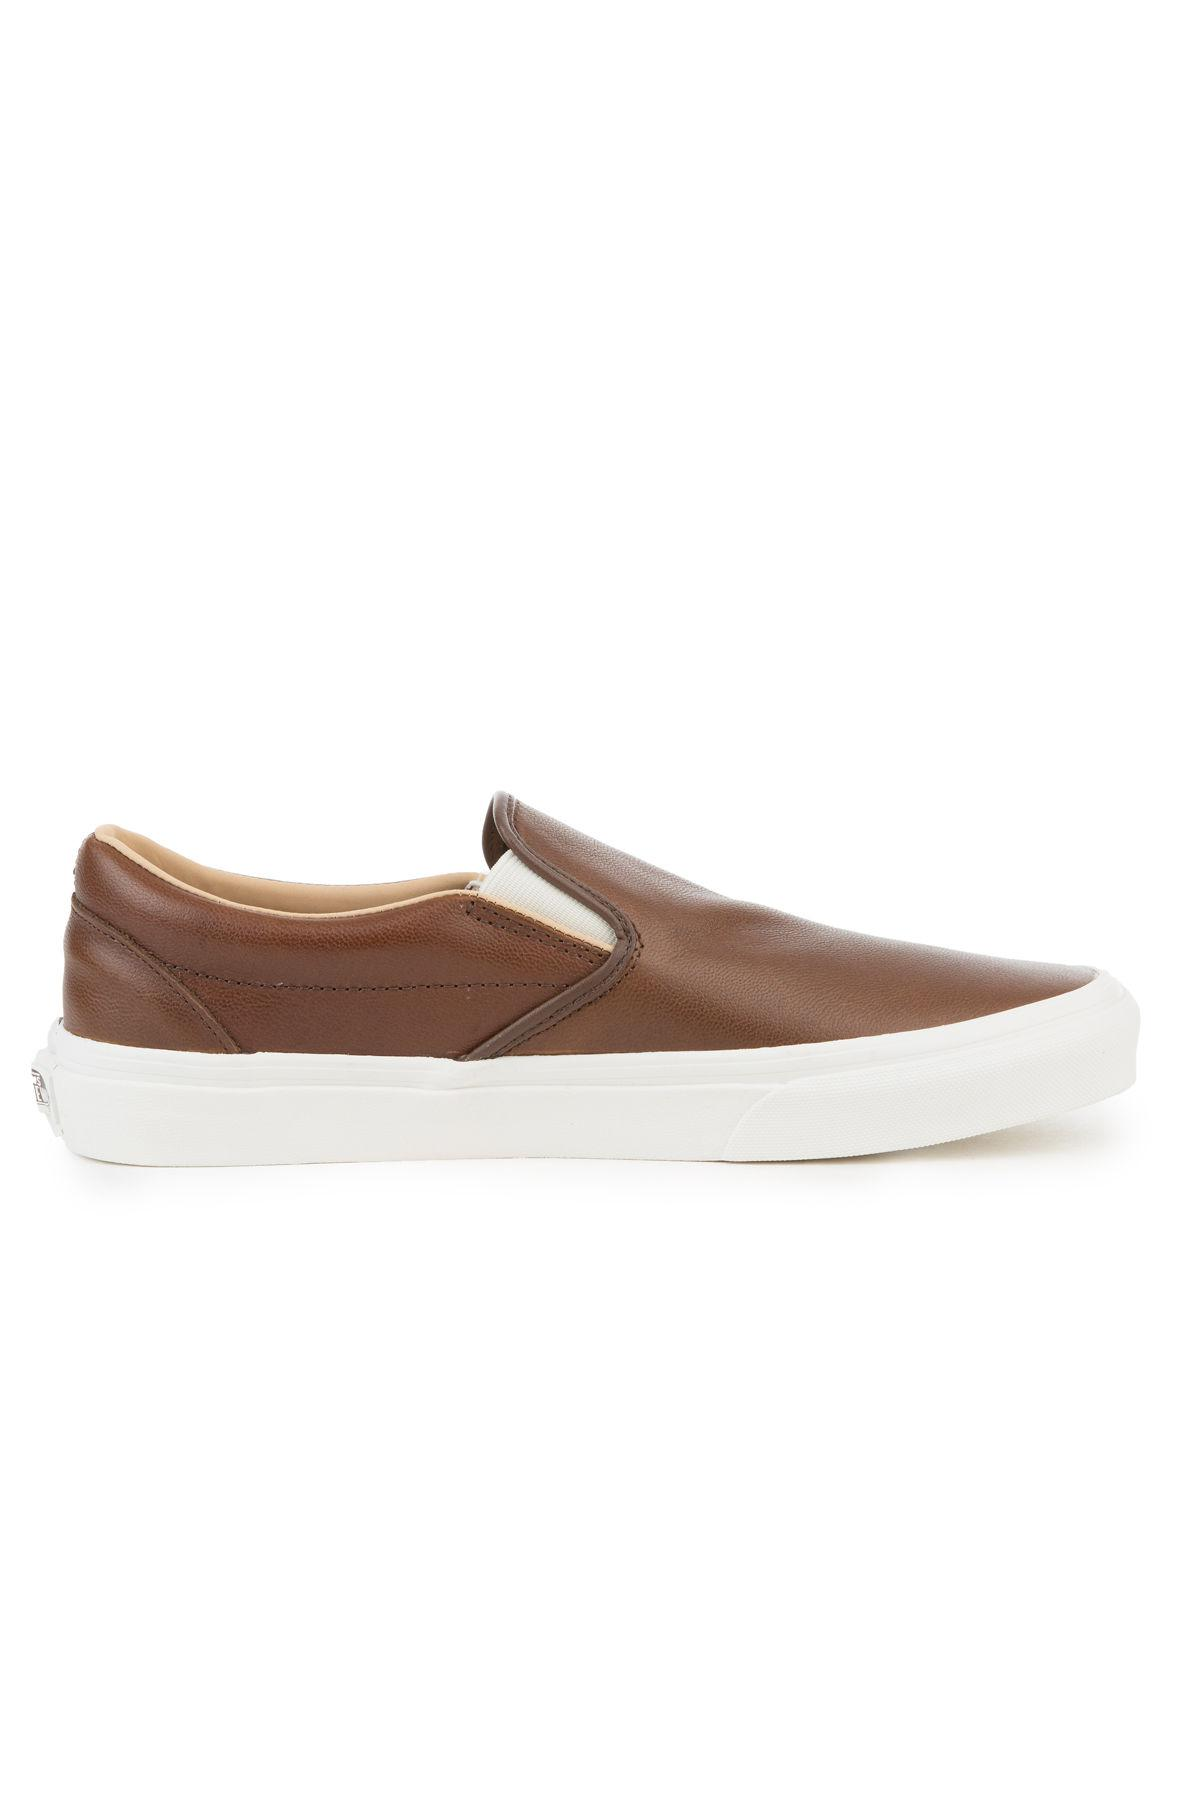 0514ce2a30 Lyst - Vans The Classic Slip-on Lux Leather In Shaved Chocolate And ...